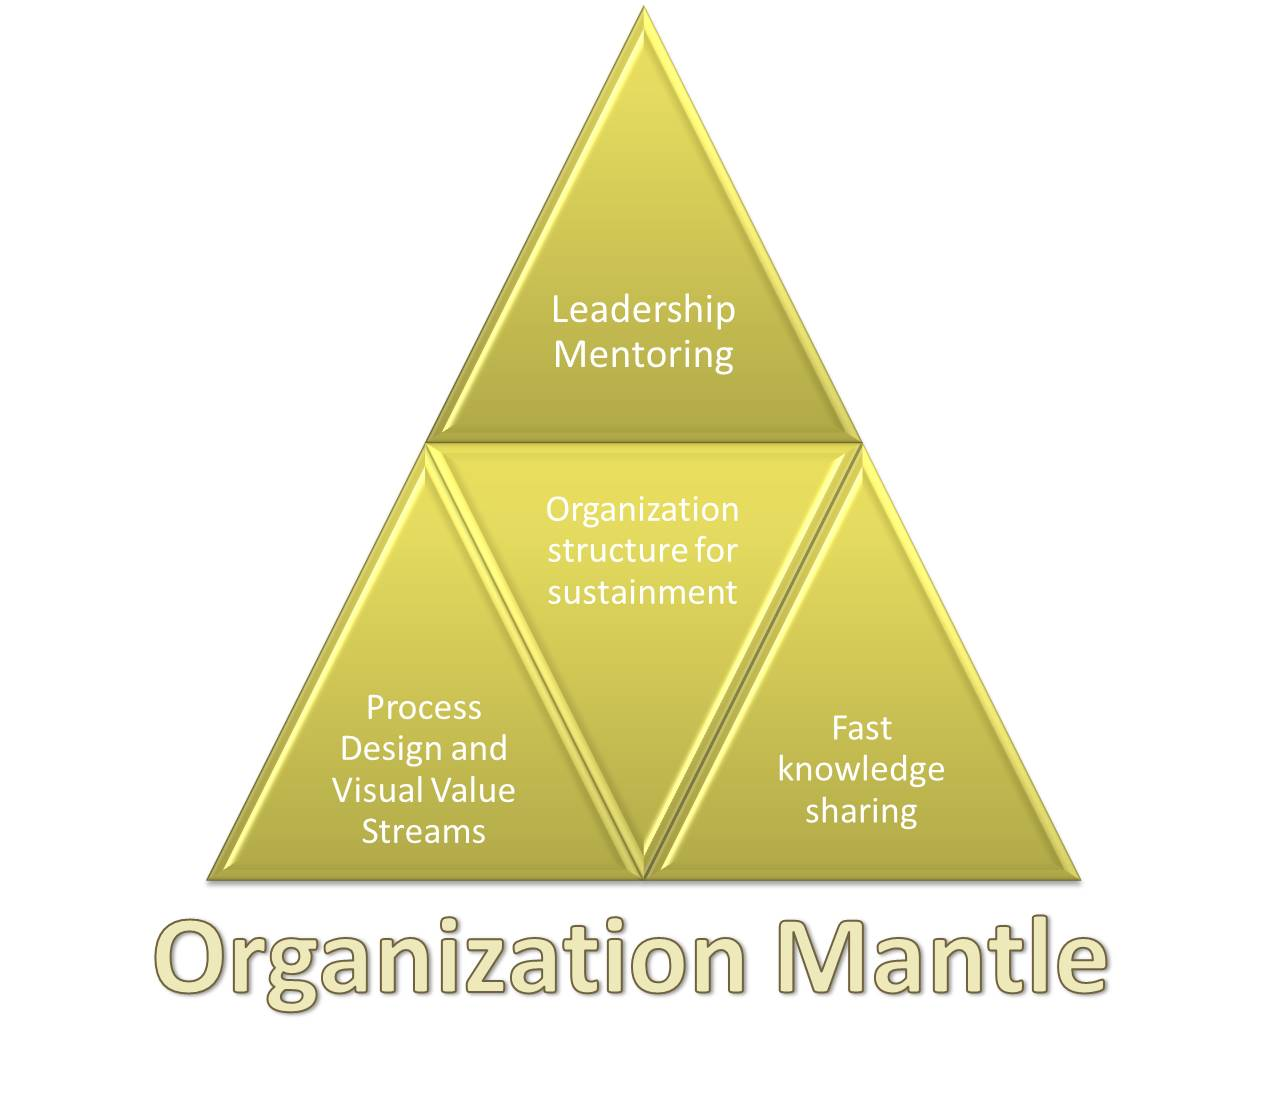 leadership and organization Effective organizations create results, and to be fully effective, nonprofits must exhibit strengths in five core organizational areas—leadership, decision making and structure, people, work processes and systems, and culture too many people are involved in every decision staff complain about.